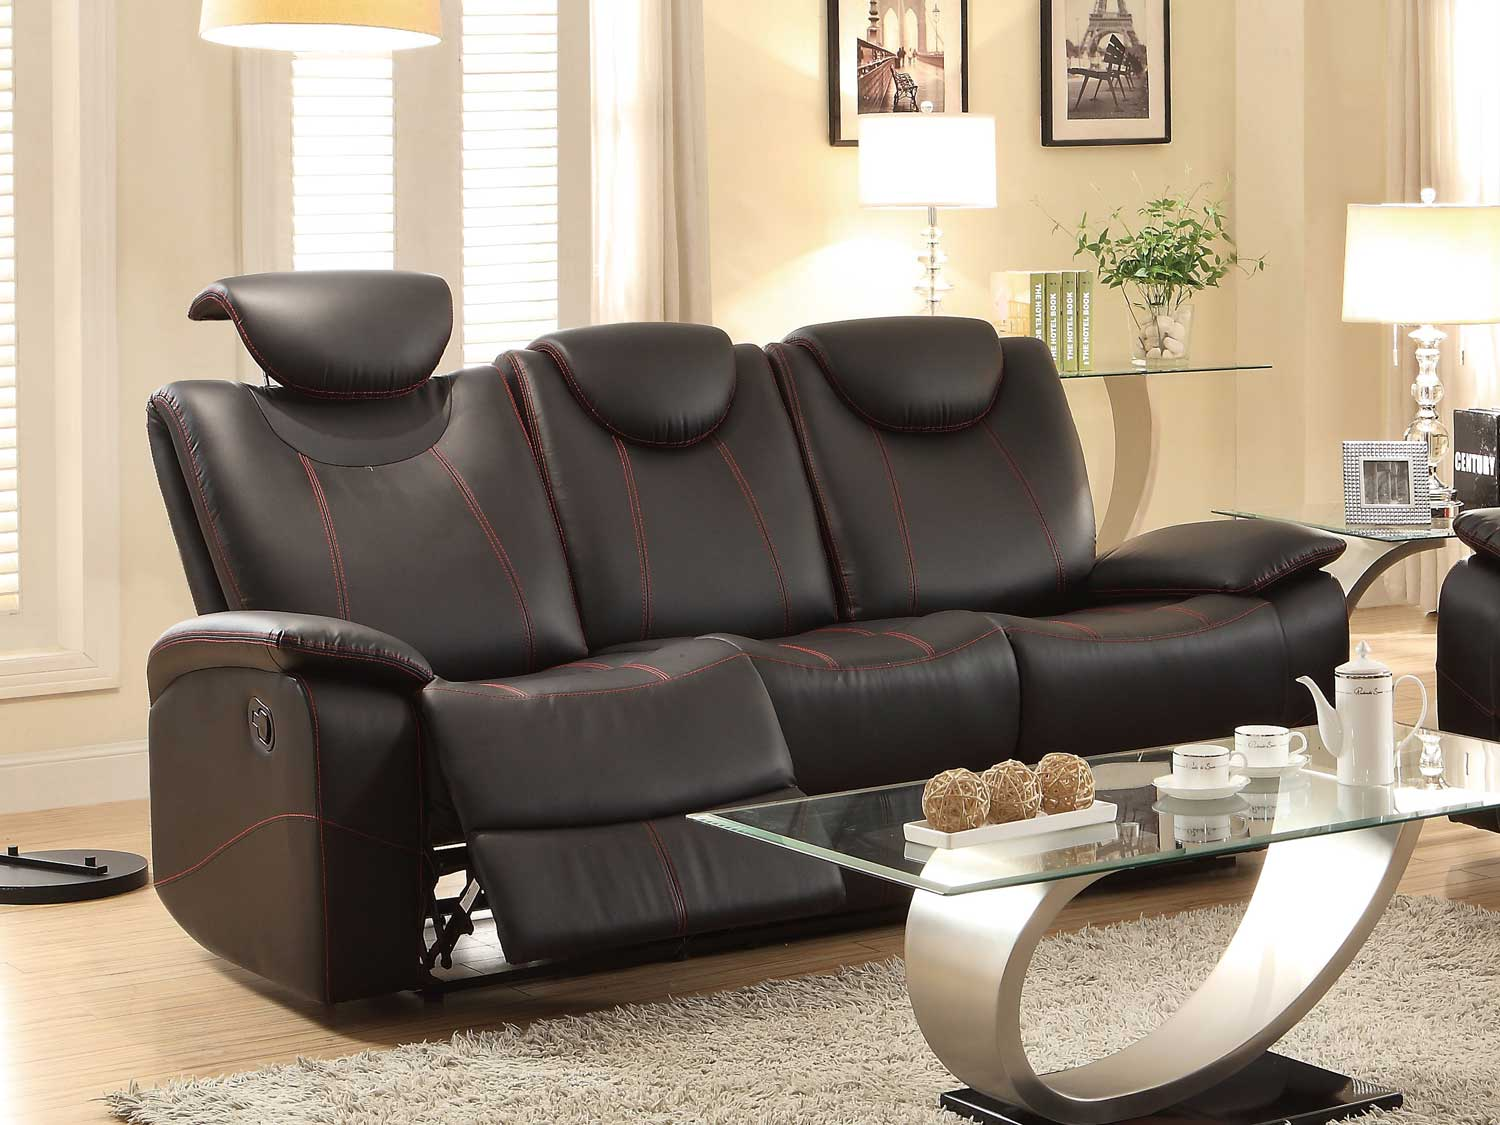 Homelegance Talbot Double Reclining Sofa - Black Bonded Leather